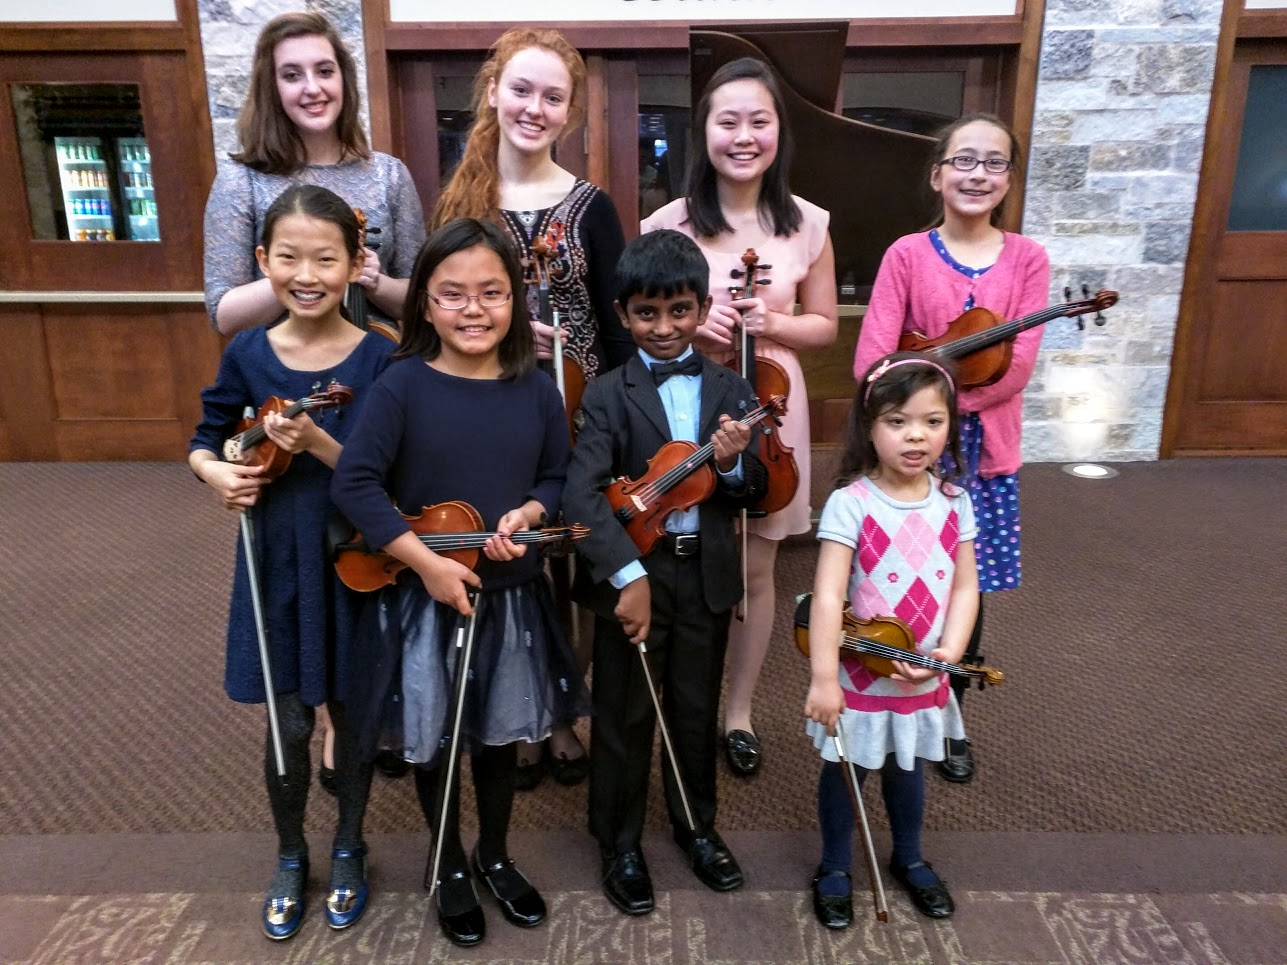 Recital at Sarah Chudnow Community Center